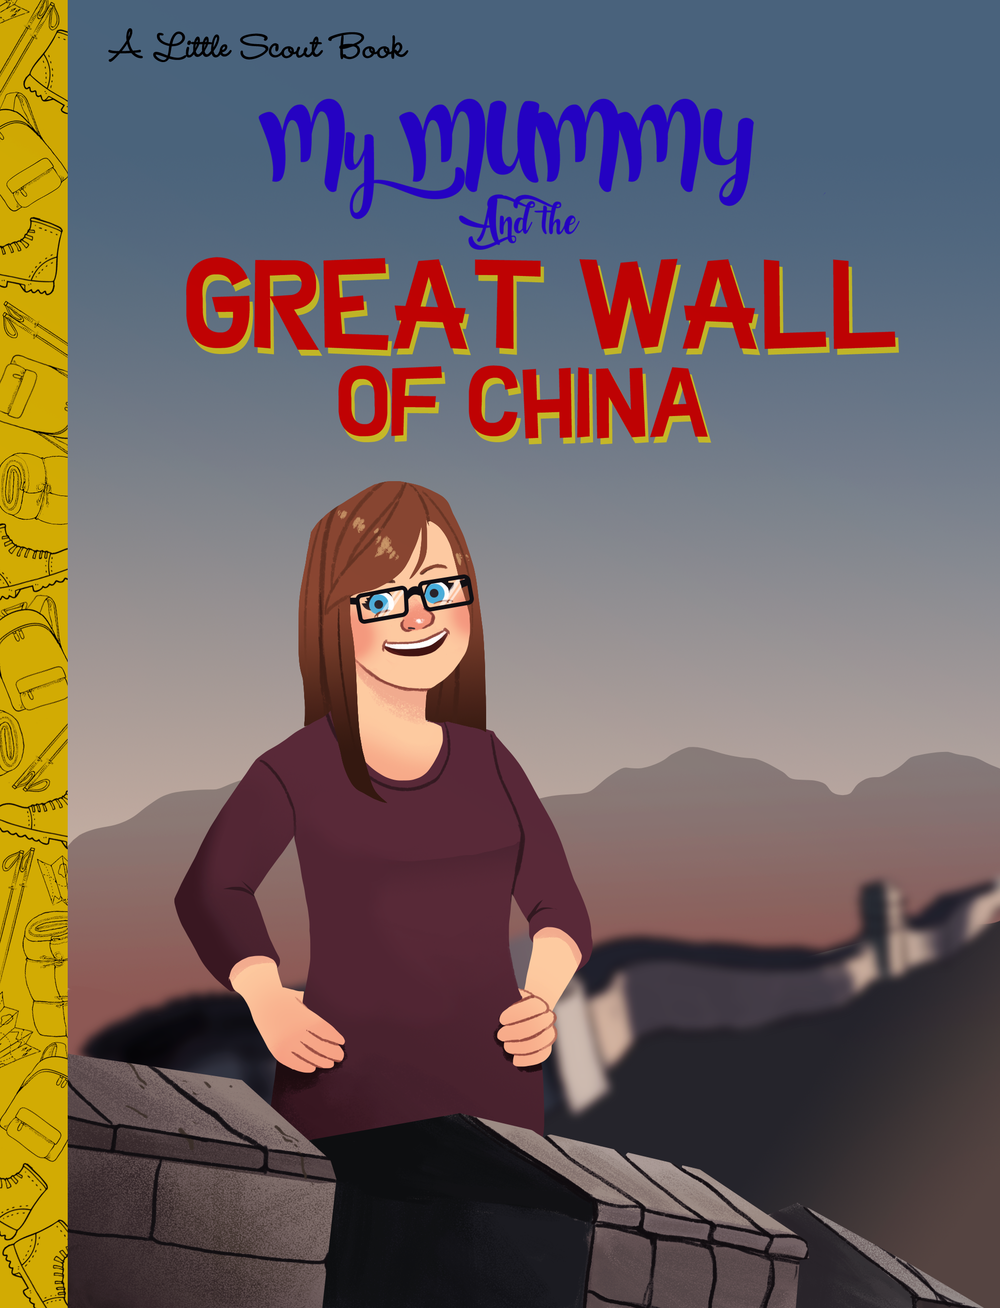 Client requested an illustration in the style of Quirk Books' Pop Classic Picture Books to celebrate his wife's charity walk across the Great Wall of China.   Adobe Photoshop